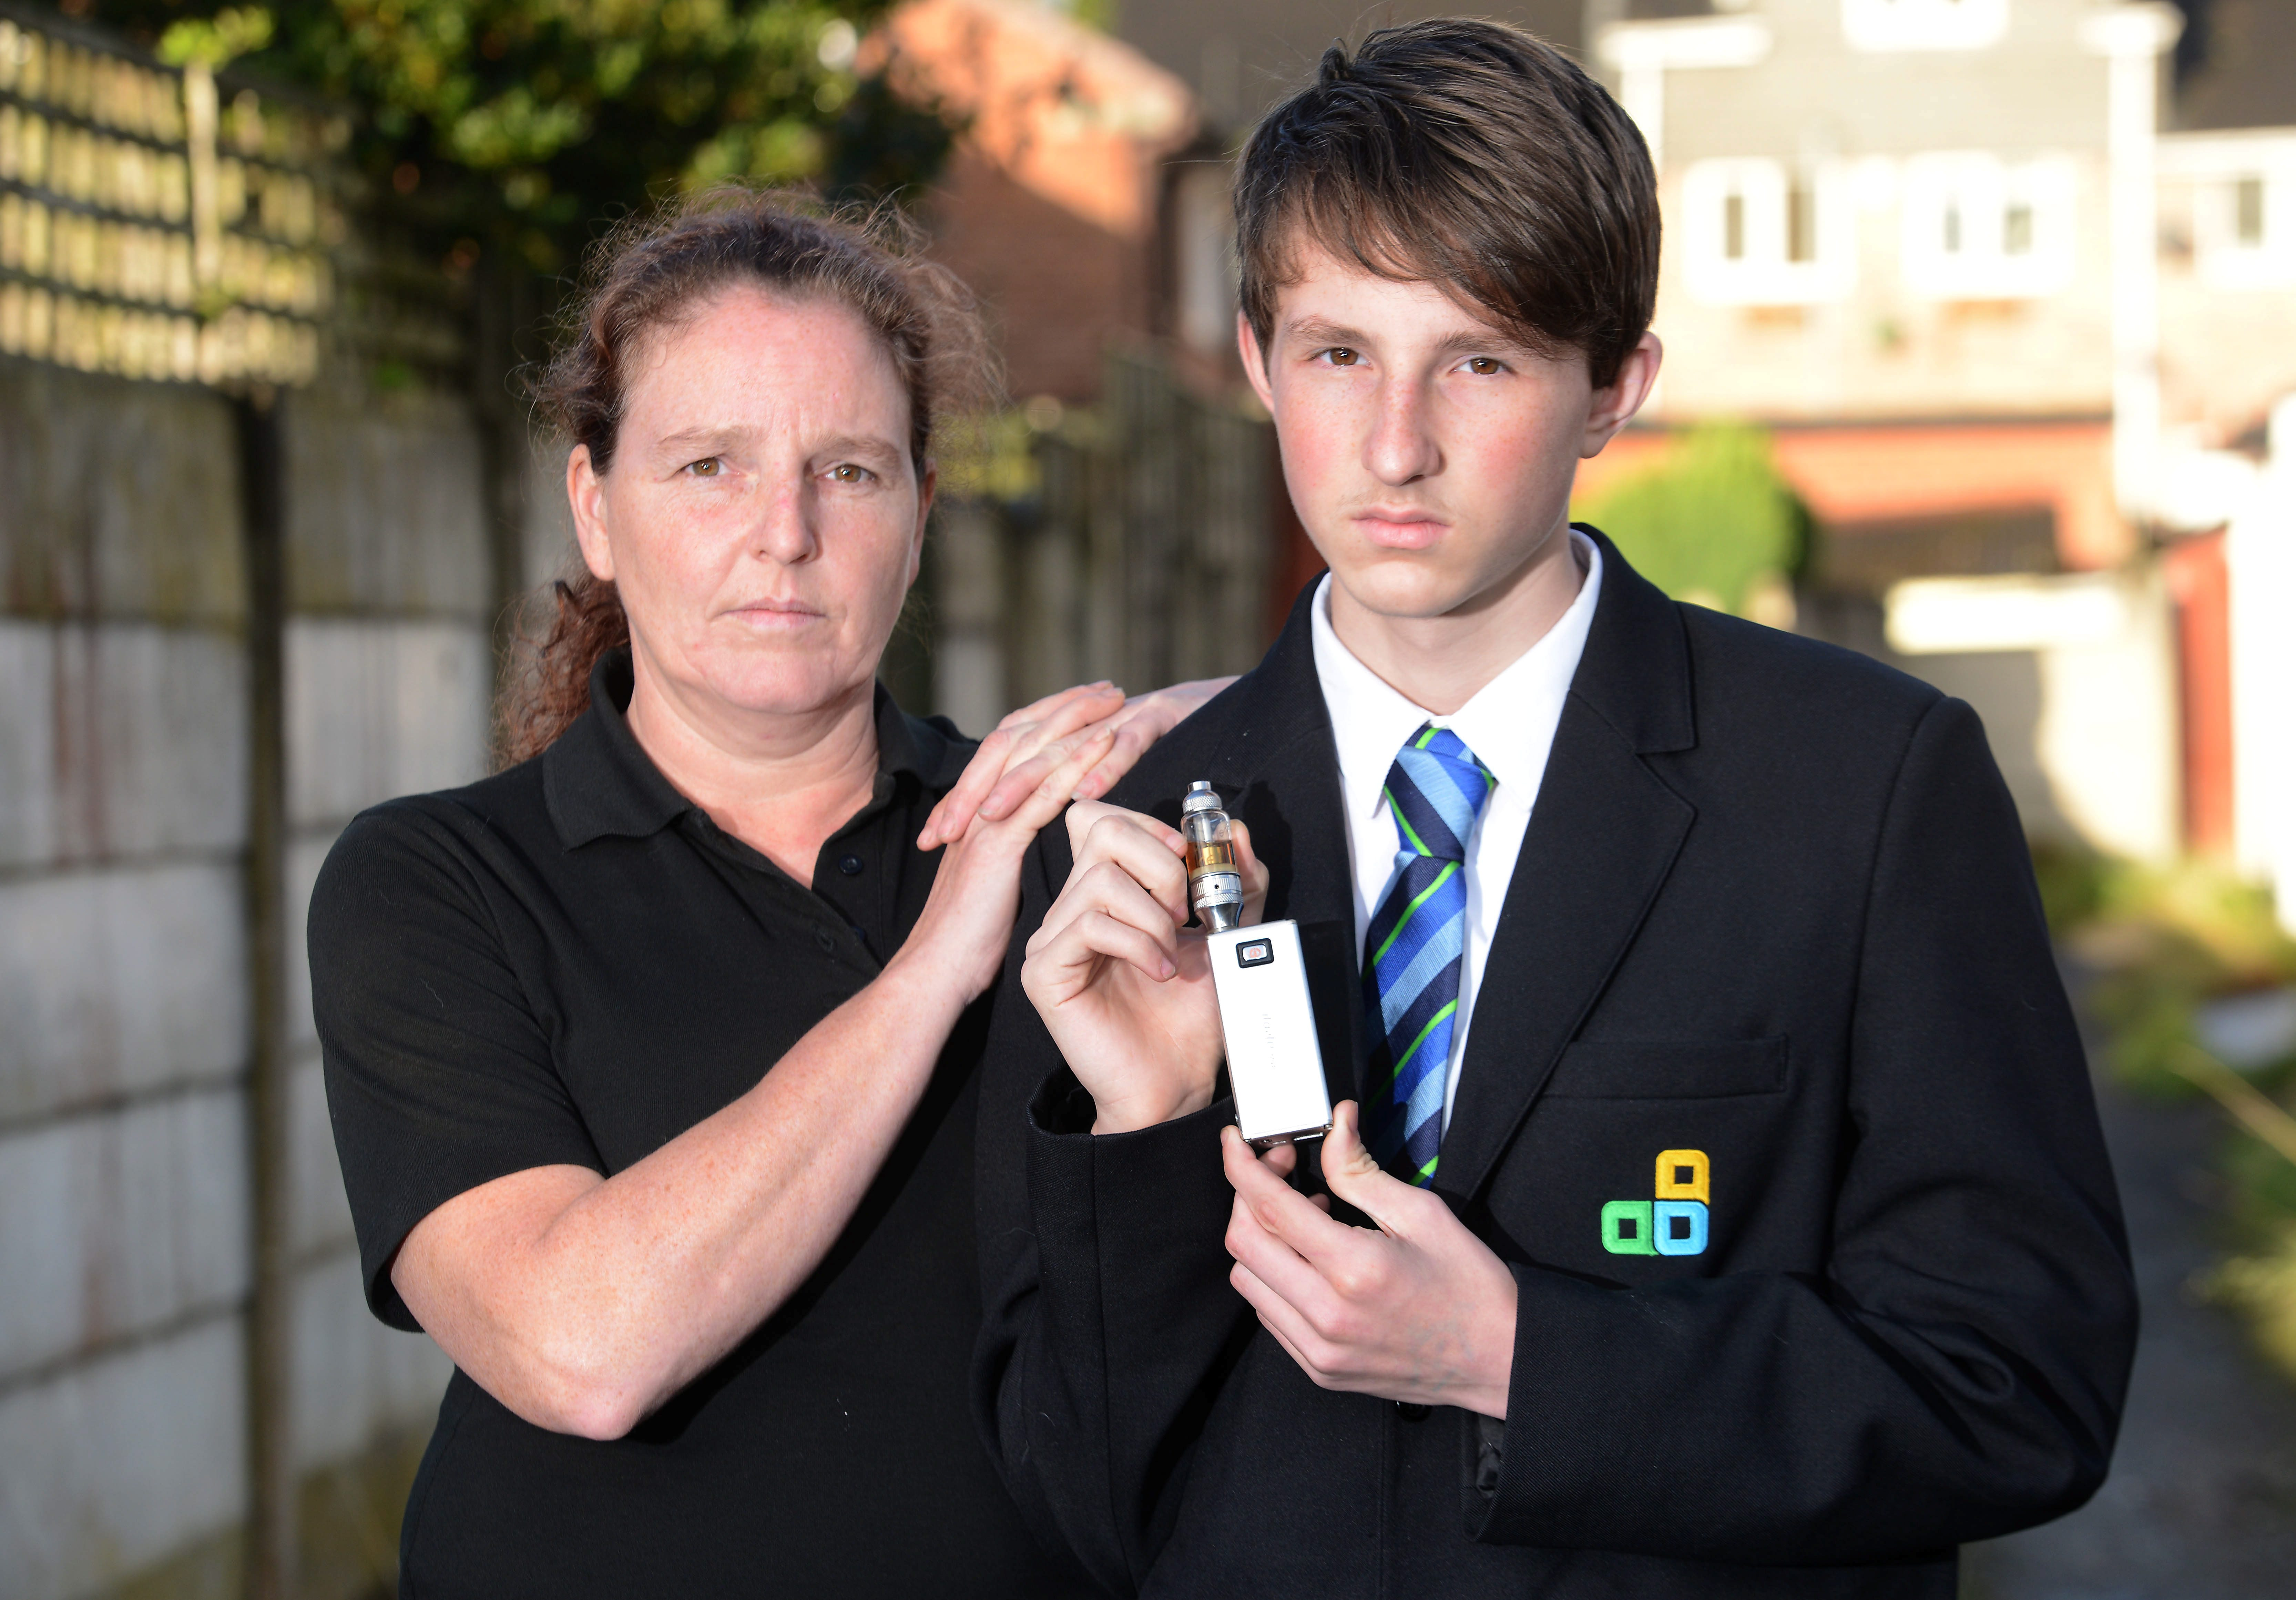 E's not a bad lad! : Mum slams school for confiscating 14